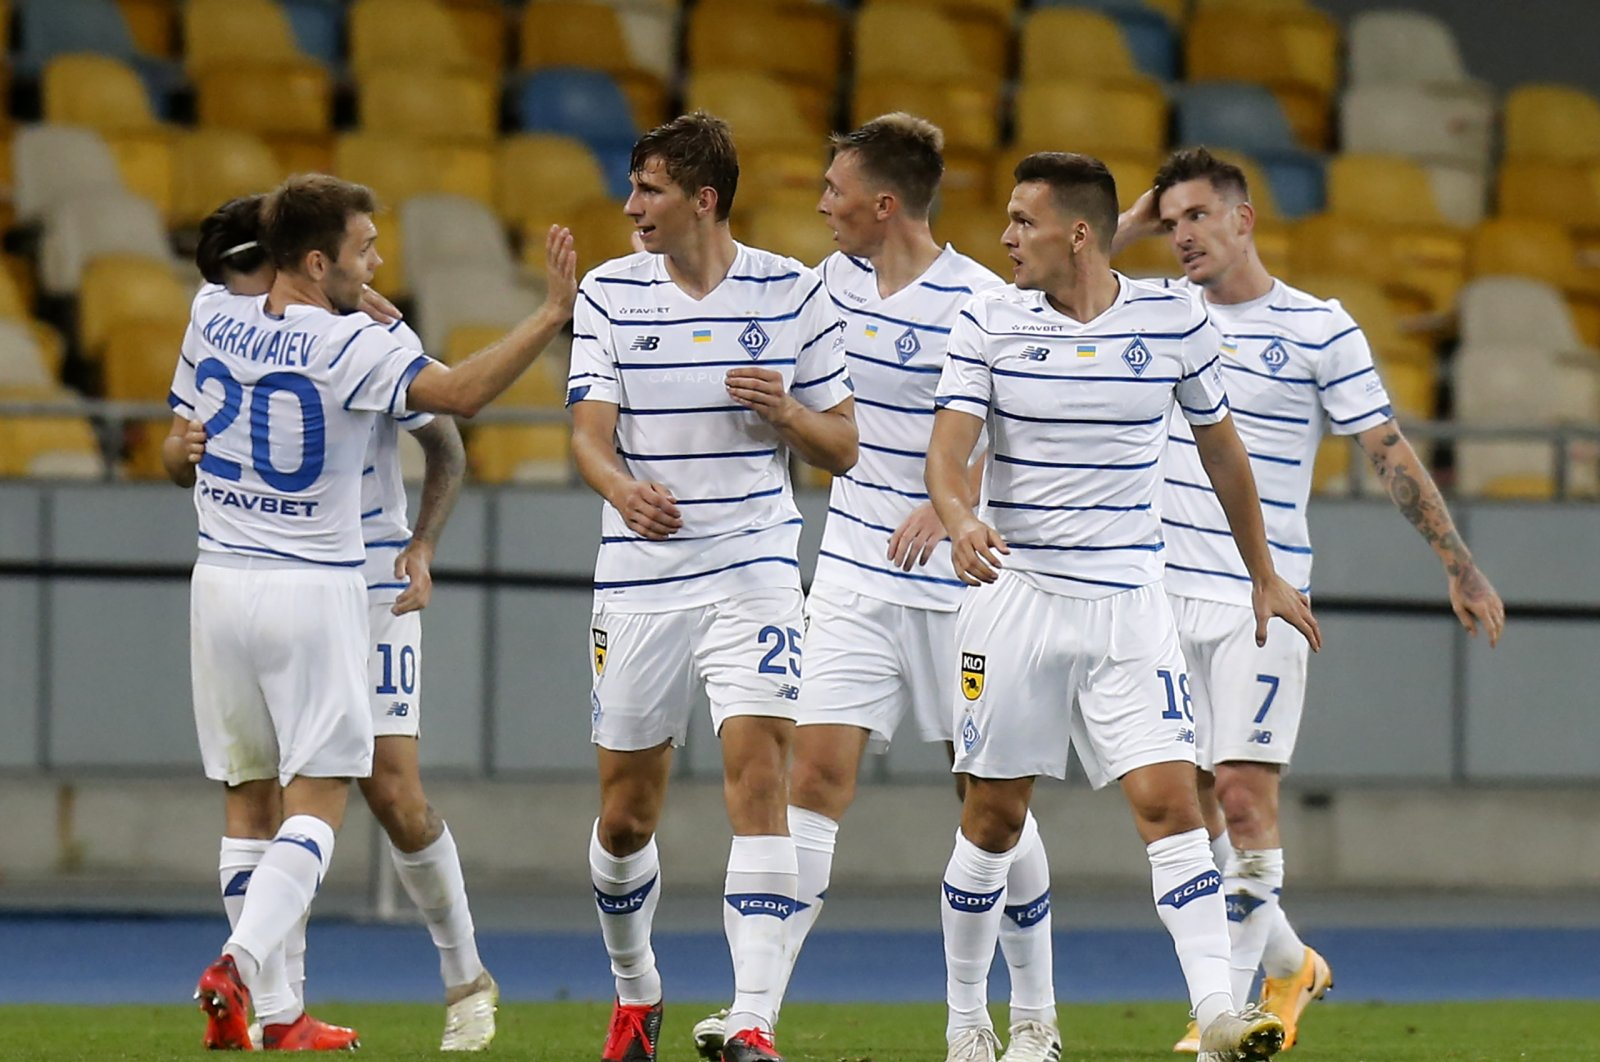 Dynamo Kyiv players celebrate after scoring their side's second goal during the Champions League third qualifying round match against AZ Alkmaar at the Olimpiyskiy Stadium in Kyiv, Ukraine, Sept. 15, 2020. (AP Photo)